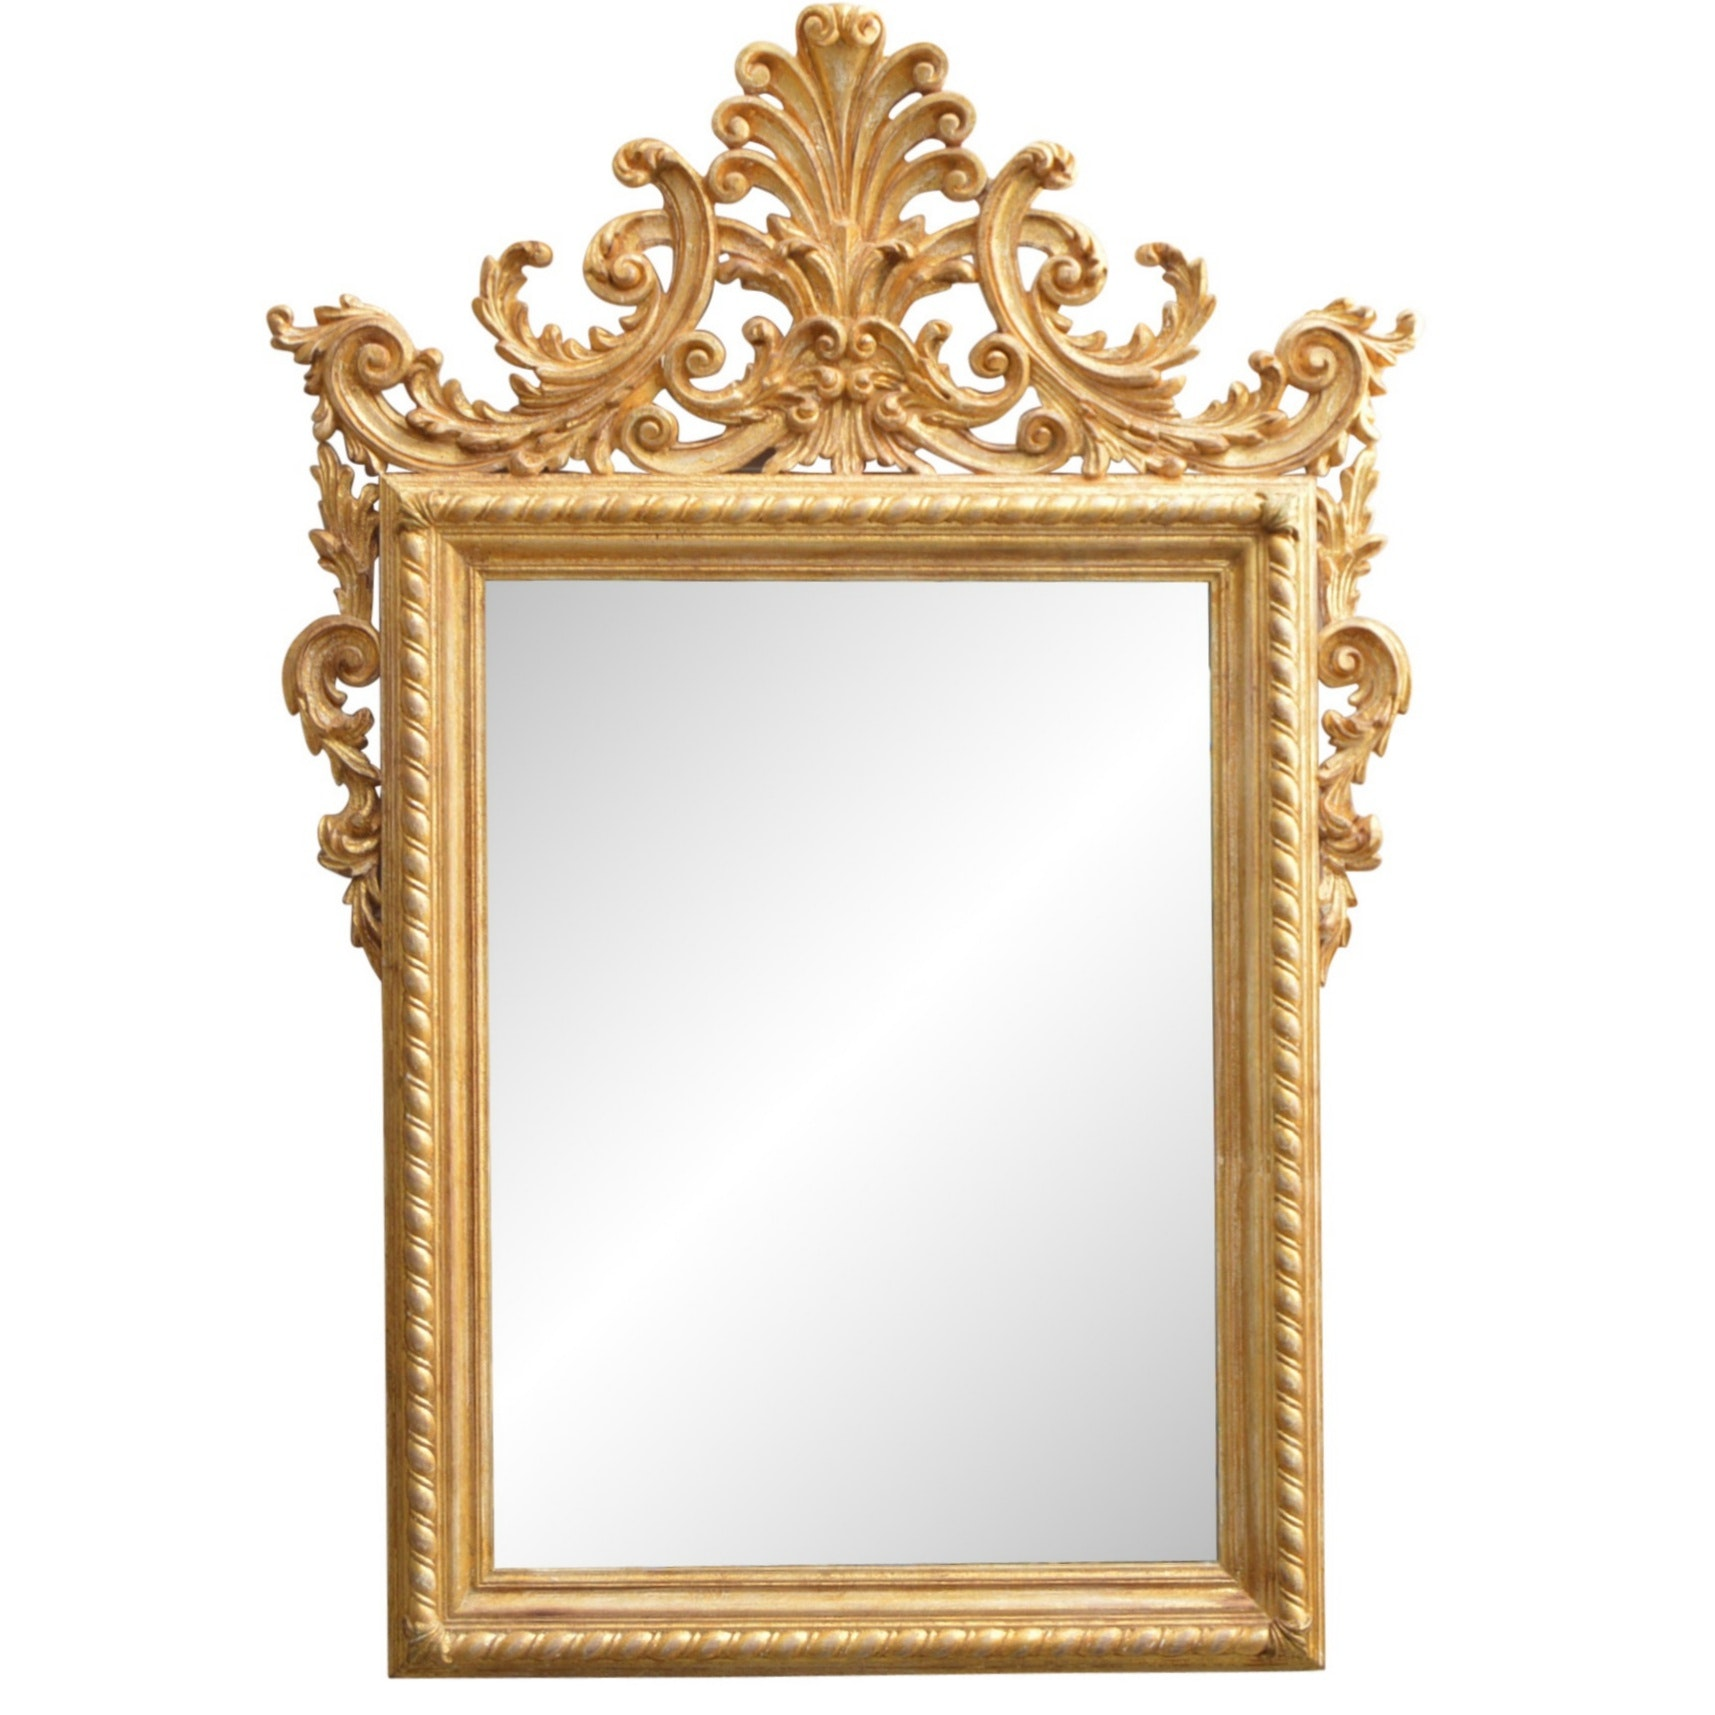 Louis XVI Style Gilded Beveled Wall Mirror from Louis Soloman